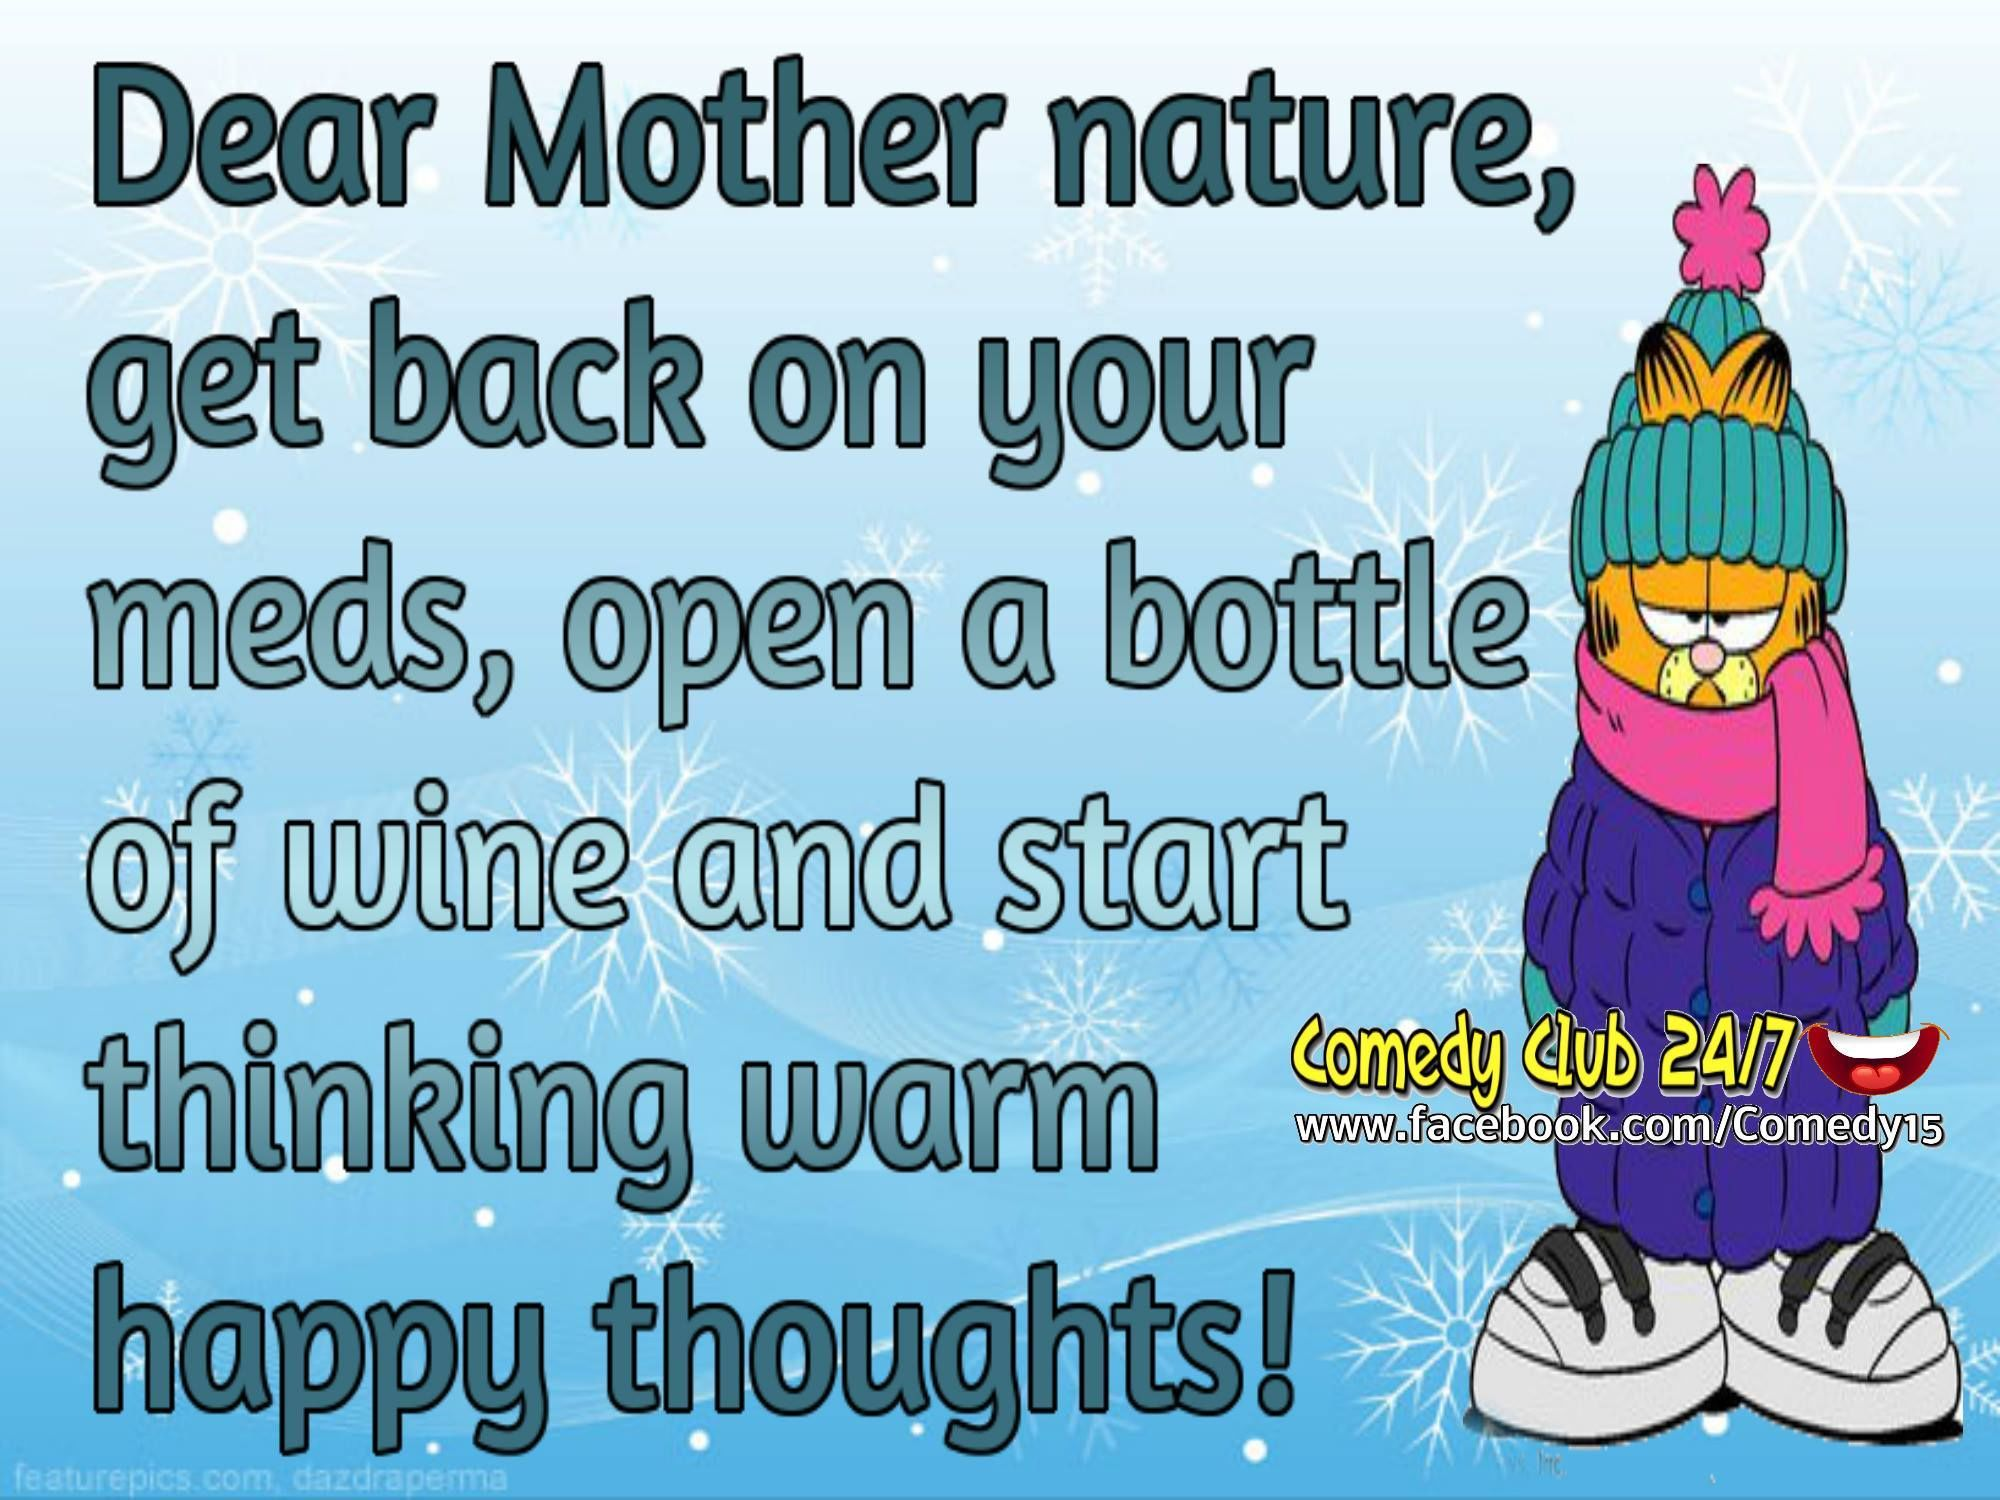 Dear Mother Nature Go Back On Your Meds And Start Thinking Happy Thoughts Funny  Quotes Quote Winter Cold Garfield Funny Quotes Humor Winter Quotes Winter  ...